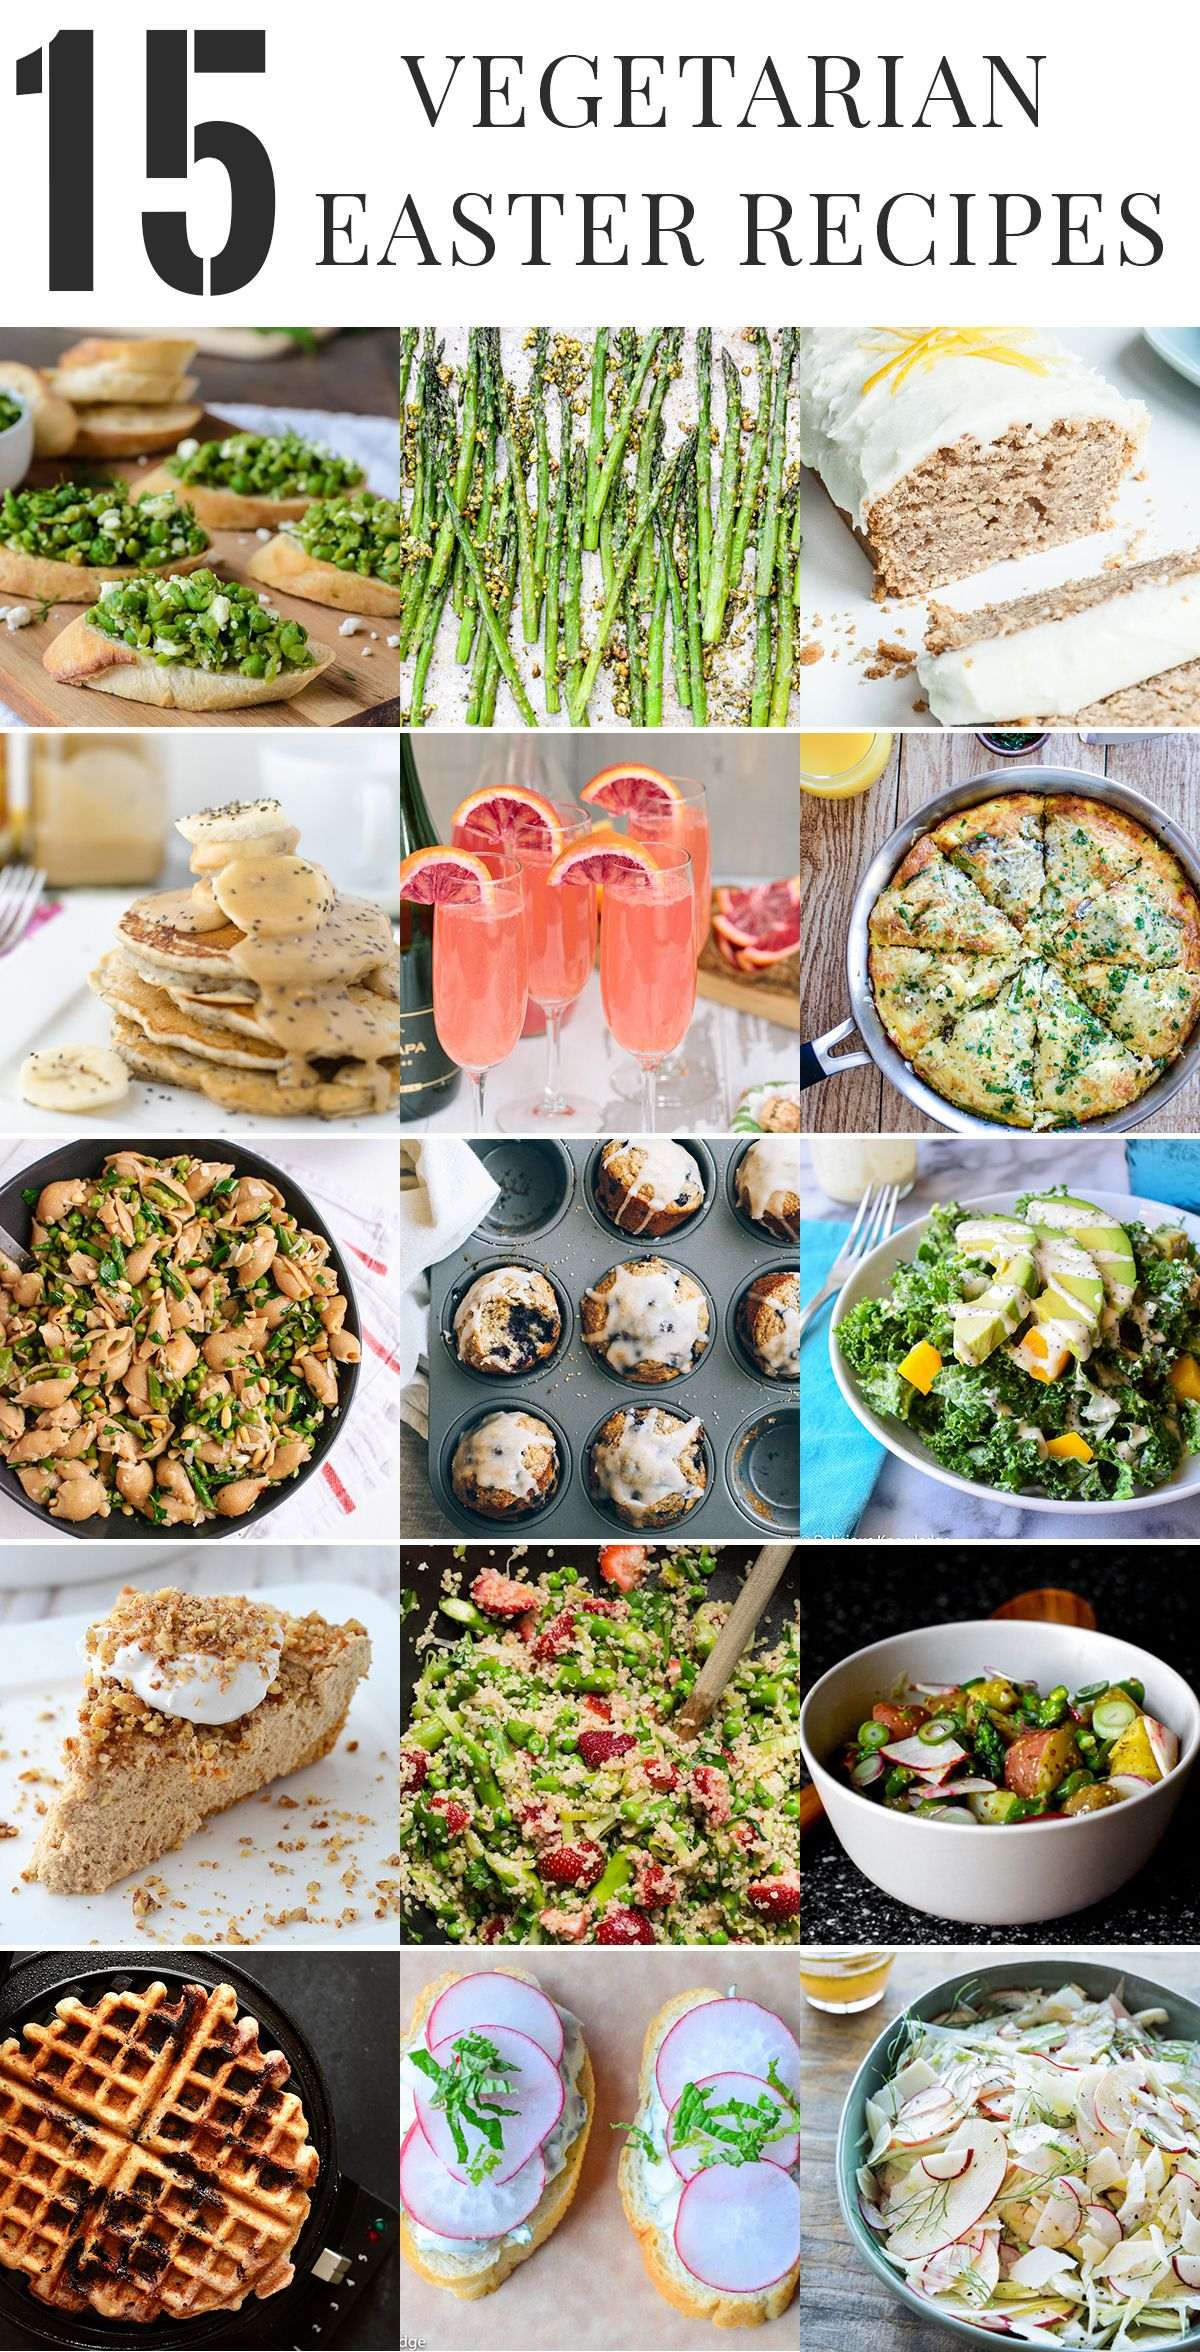 Healthy vegetarian easter recipes healthy vegetarian recipes healthy vegetarian easter recipes forumfinder Image collections